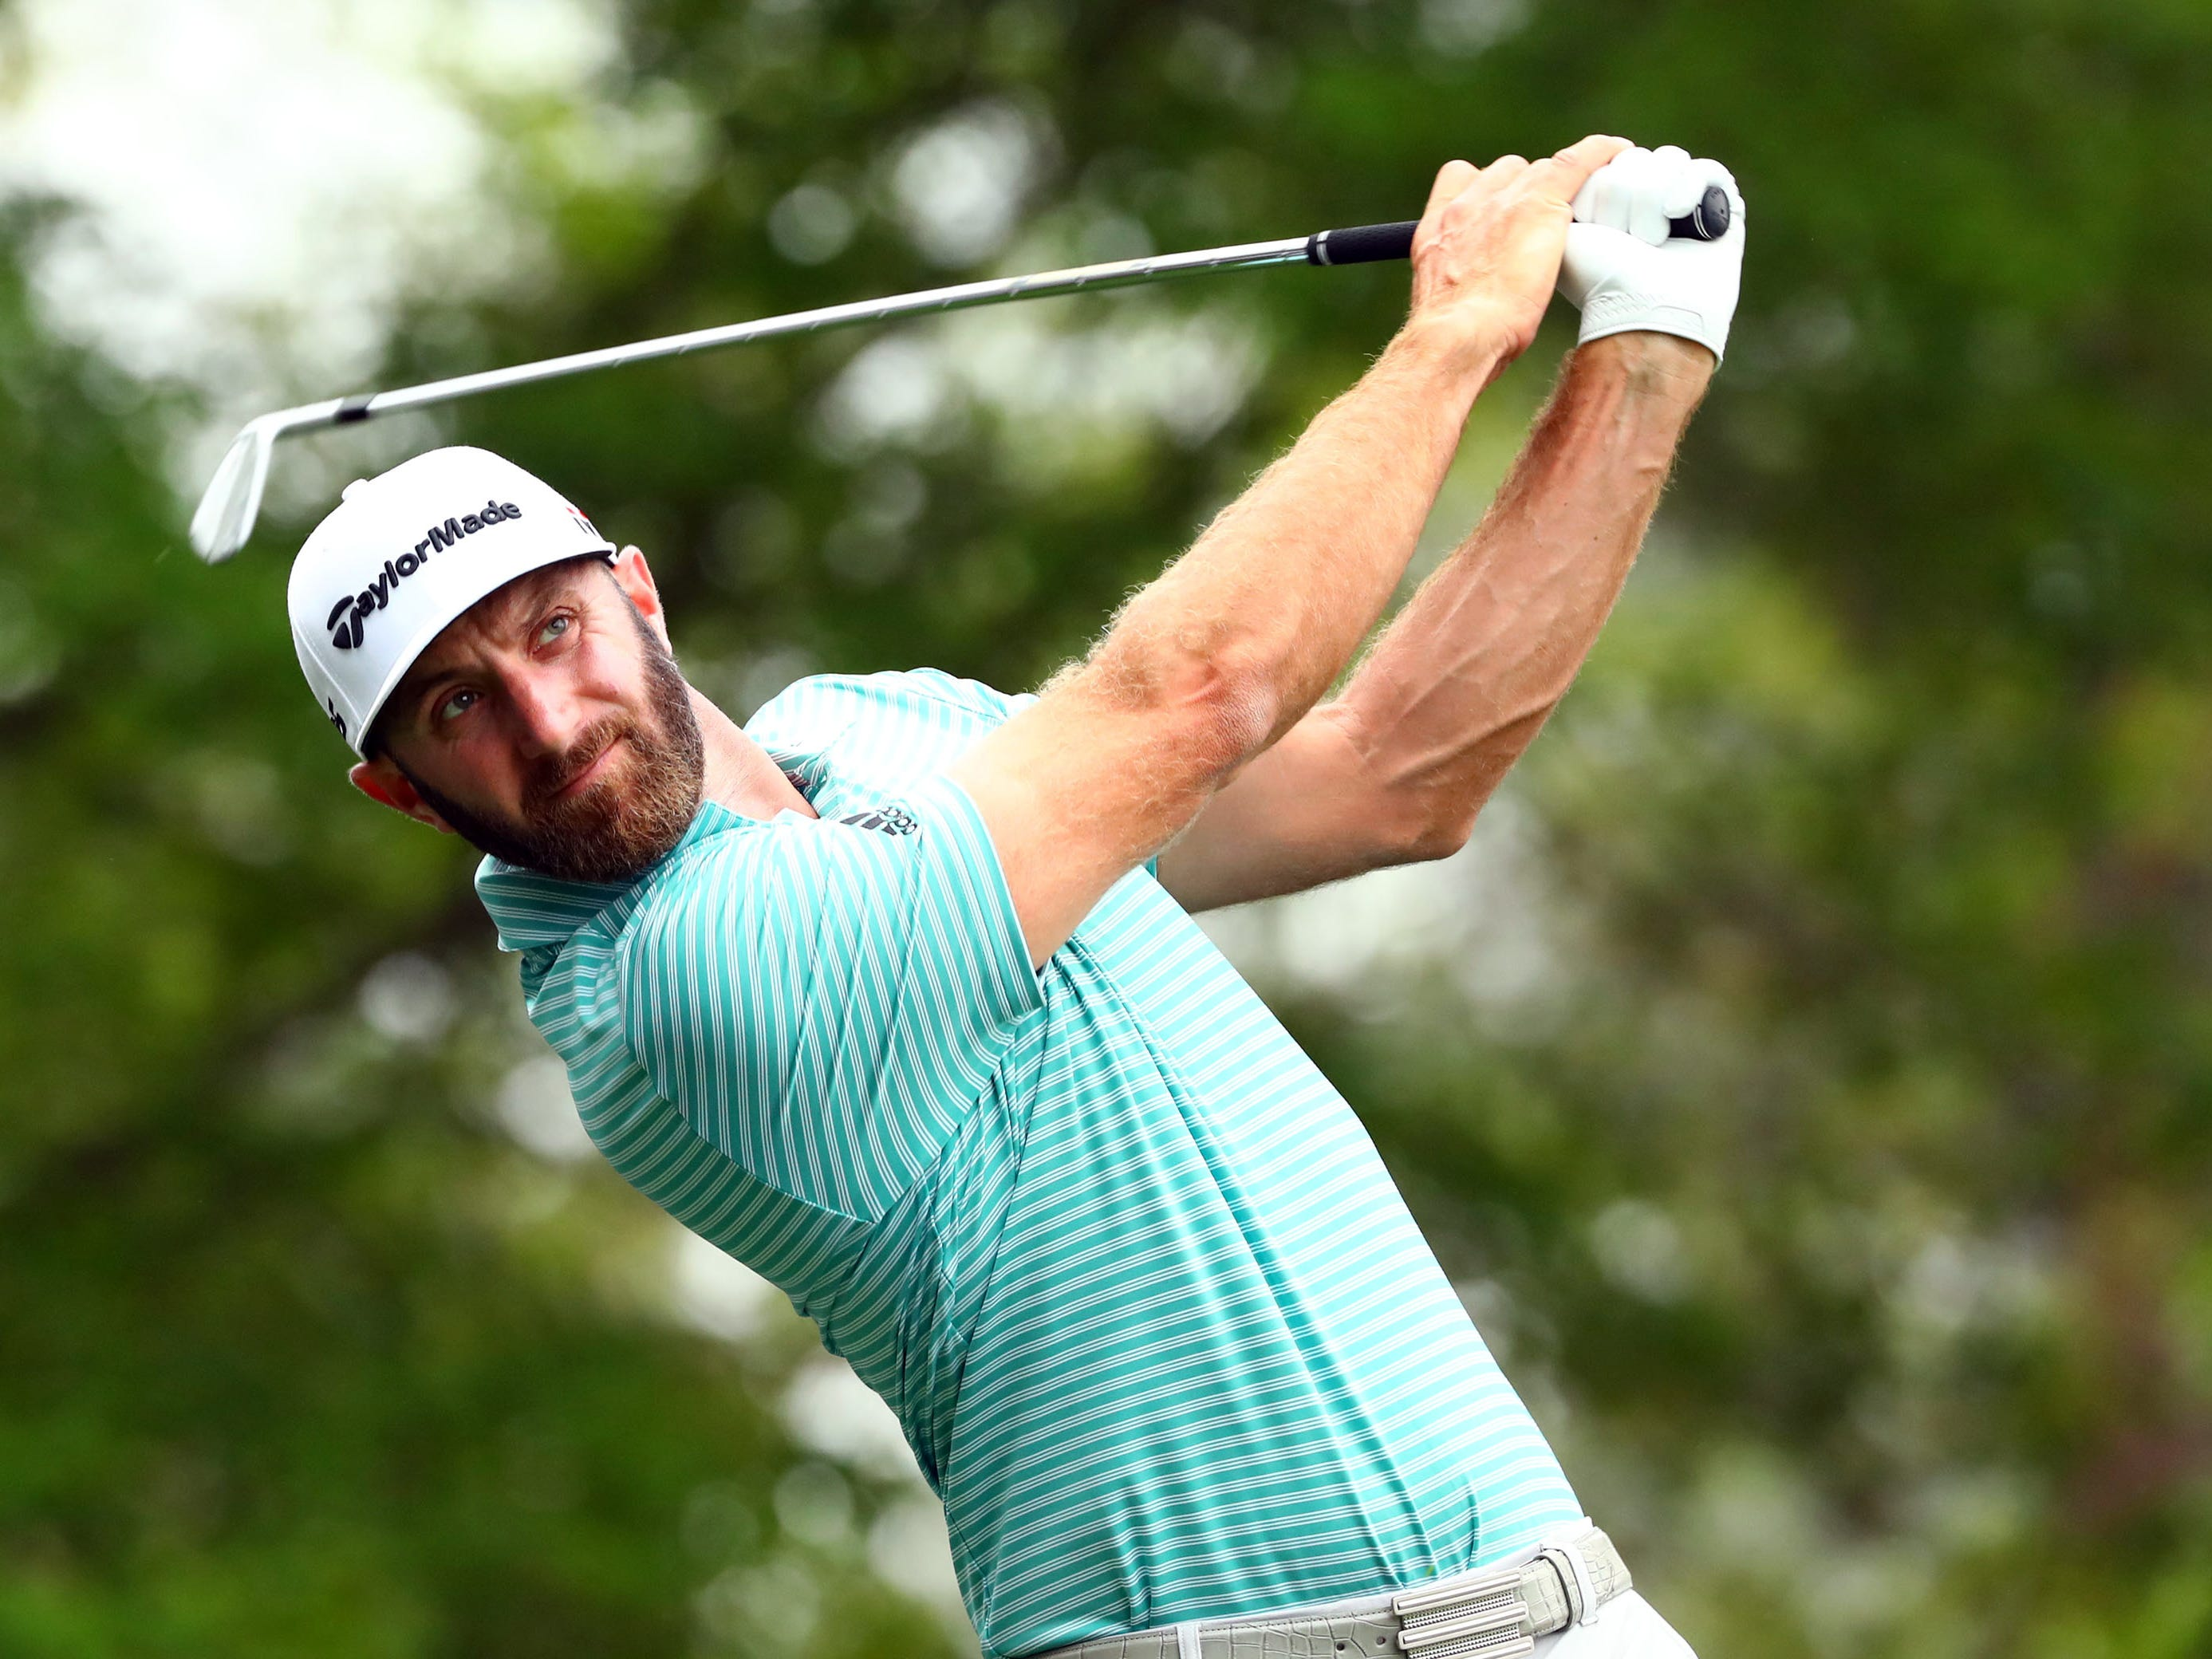 Dustin Johnson hits his tee shot on the fourth hole during a practice round for the Masters golf tournament at Augusta National Golf Club.